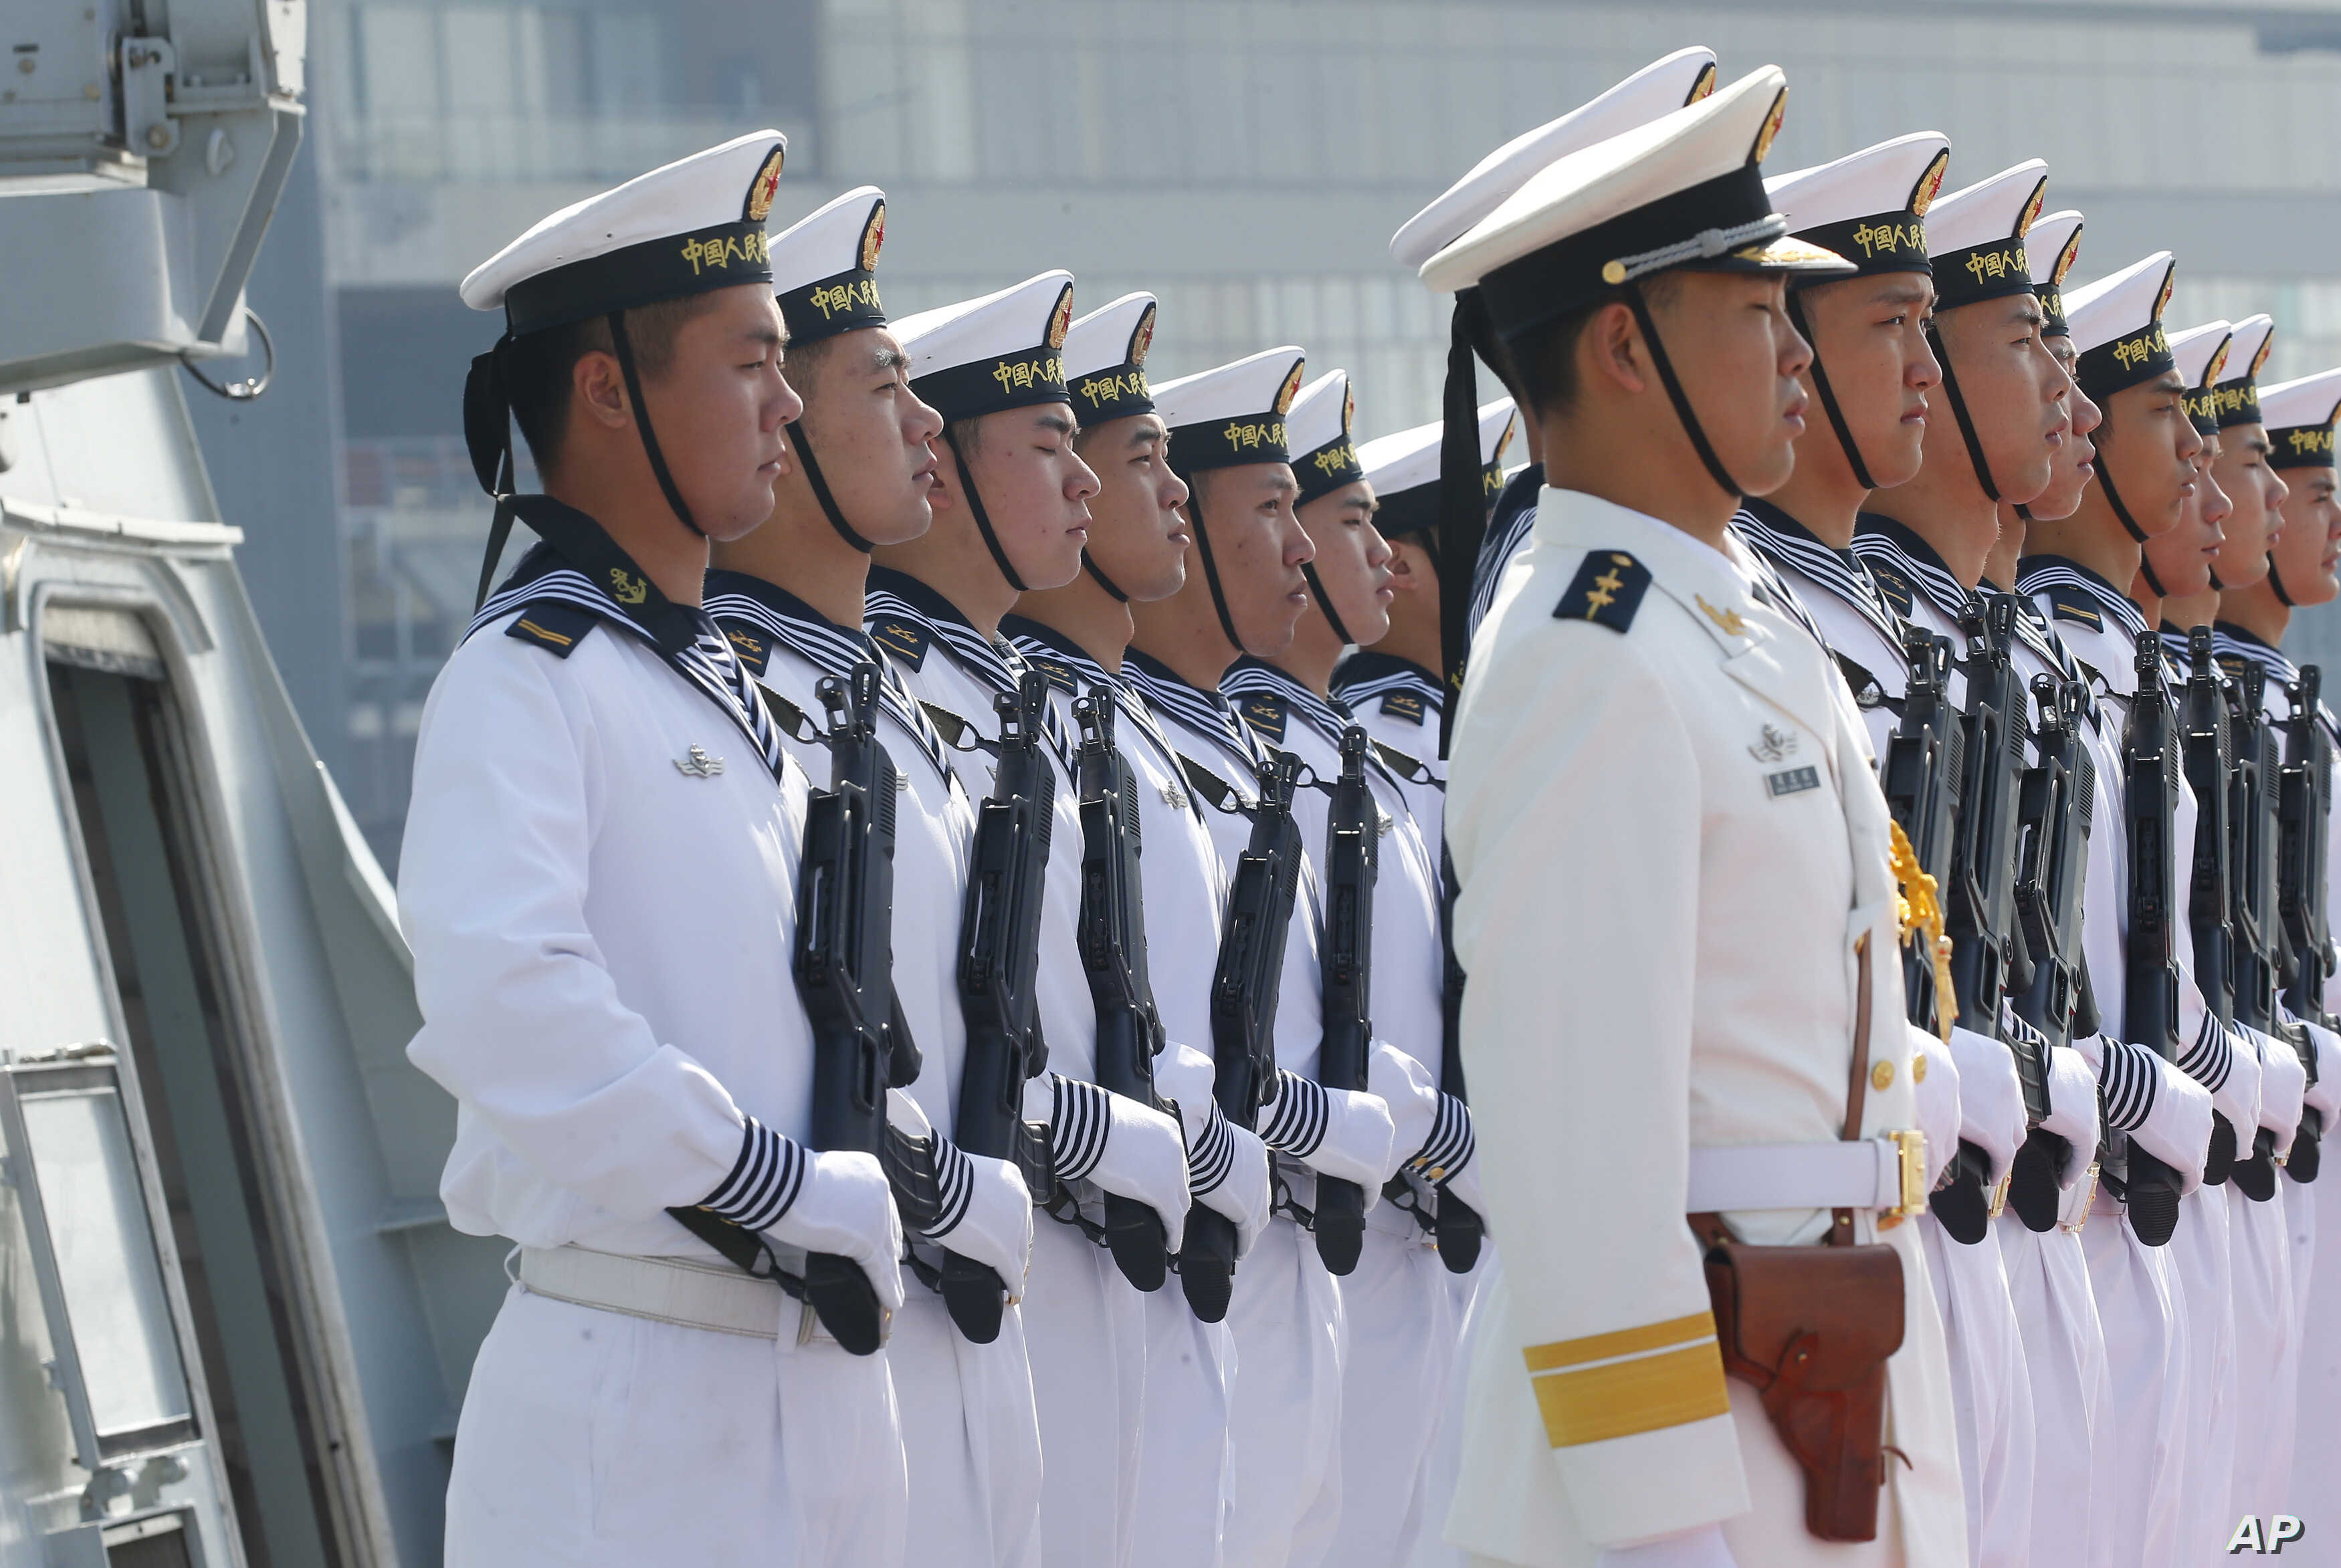 """Chinese People's Liberation Army Navy troops stand in formation on the deck of a type 054A guided missile frigate """"Wuhu"""" as it docks at Manila's South Harbor for a four-day port call, Jan. 17, 2019 in Manila, Philippines."""